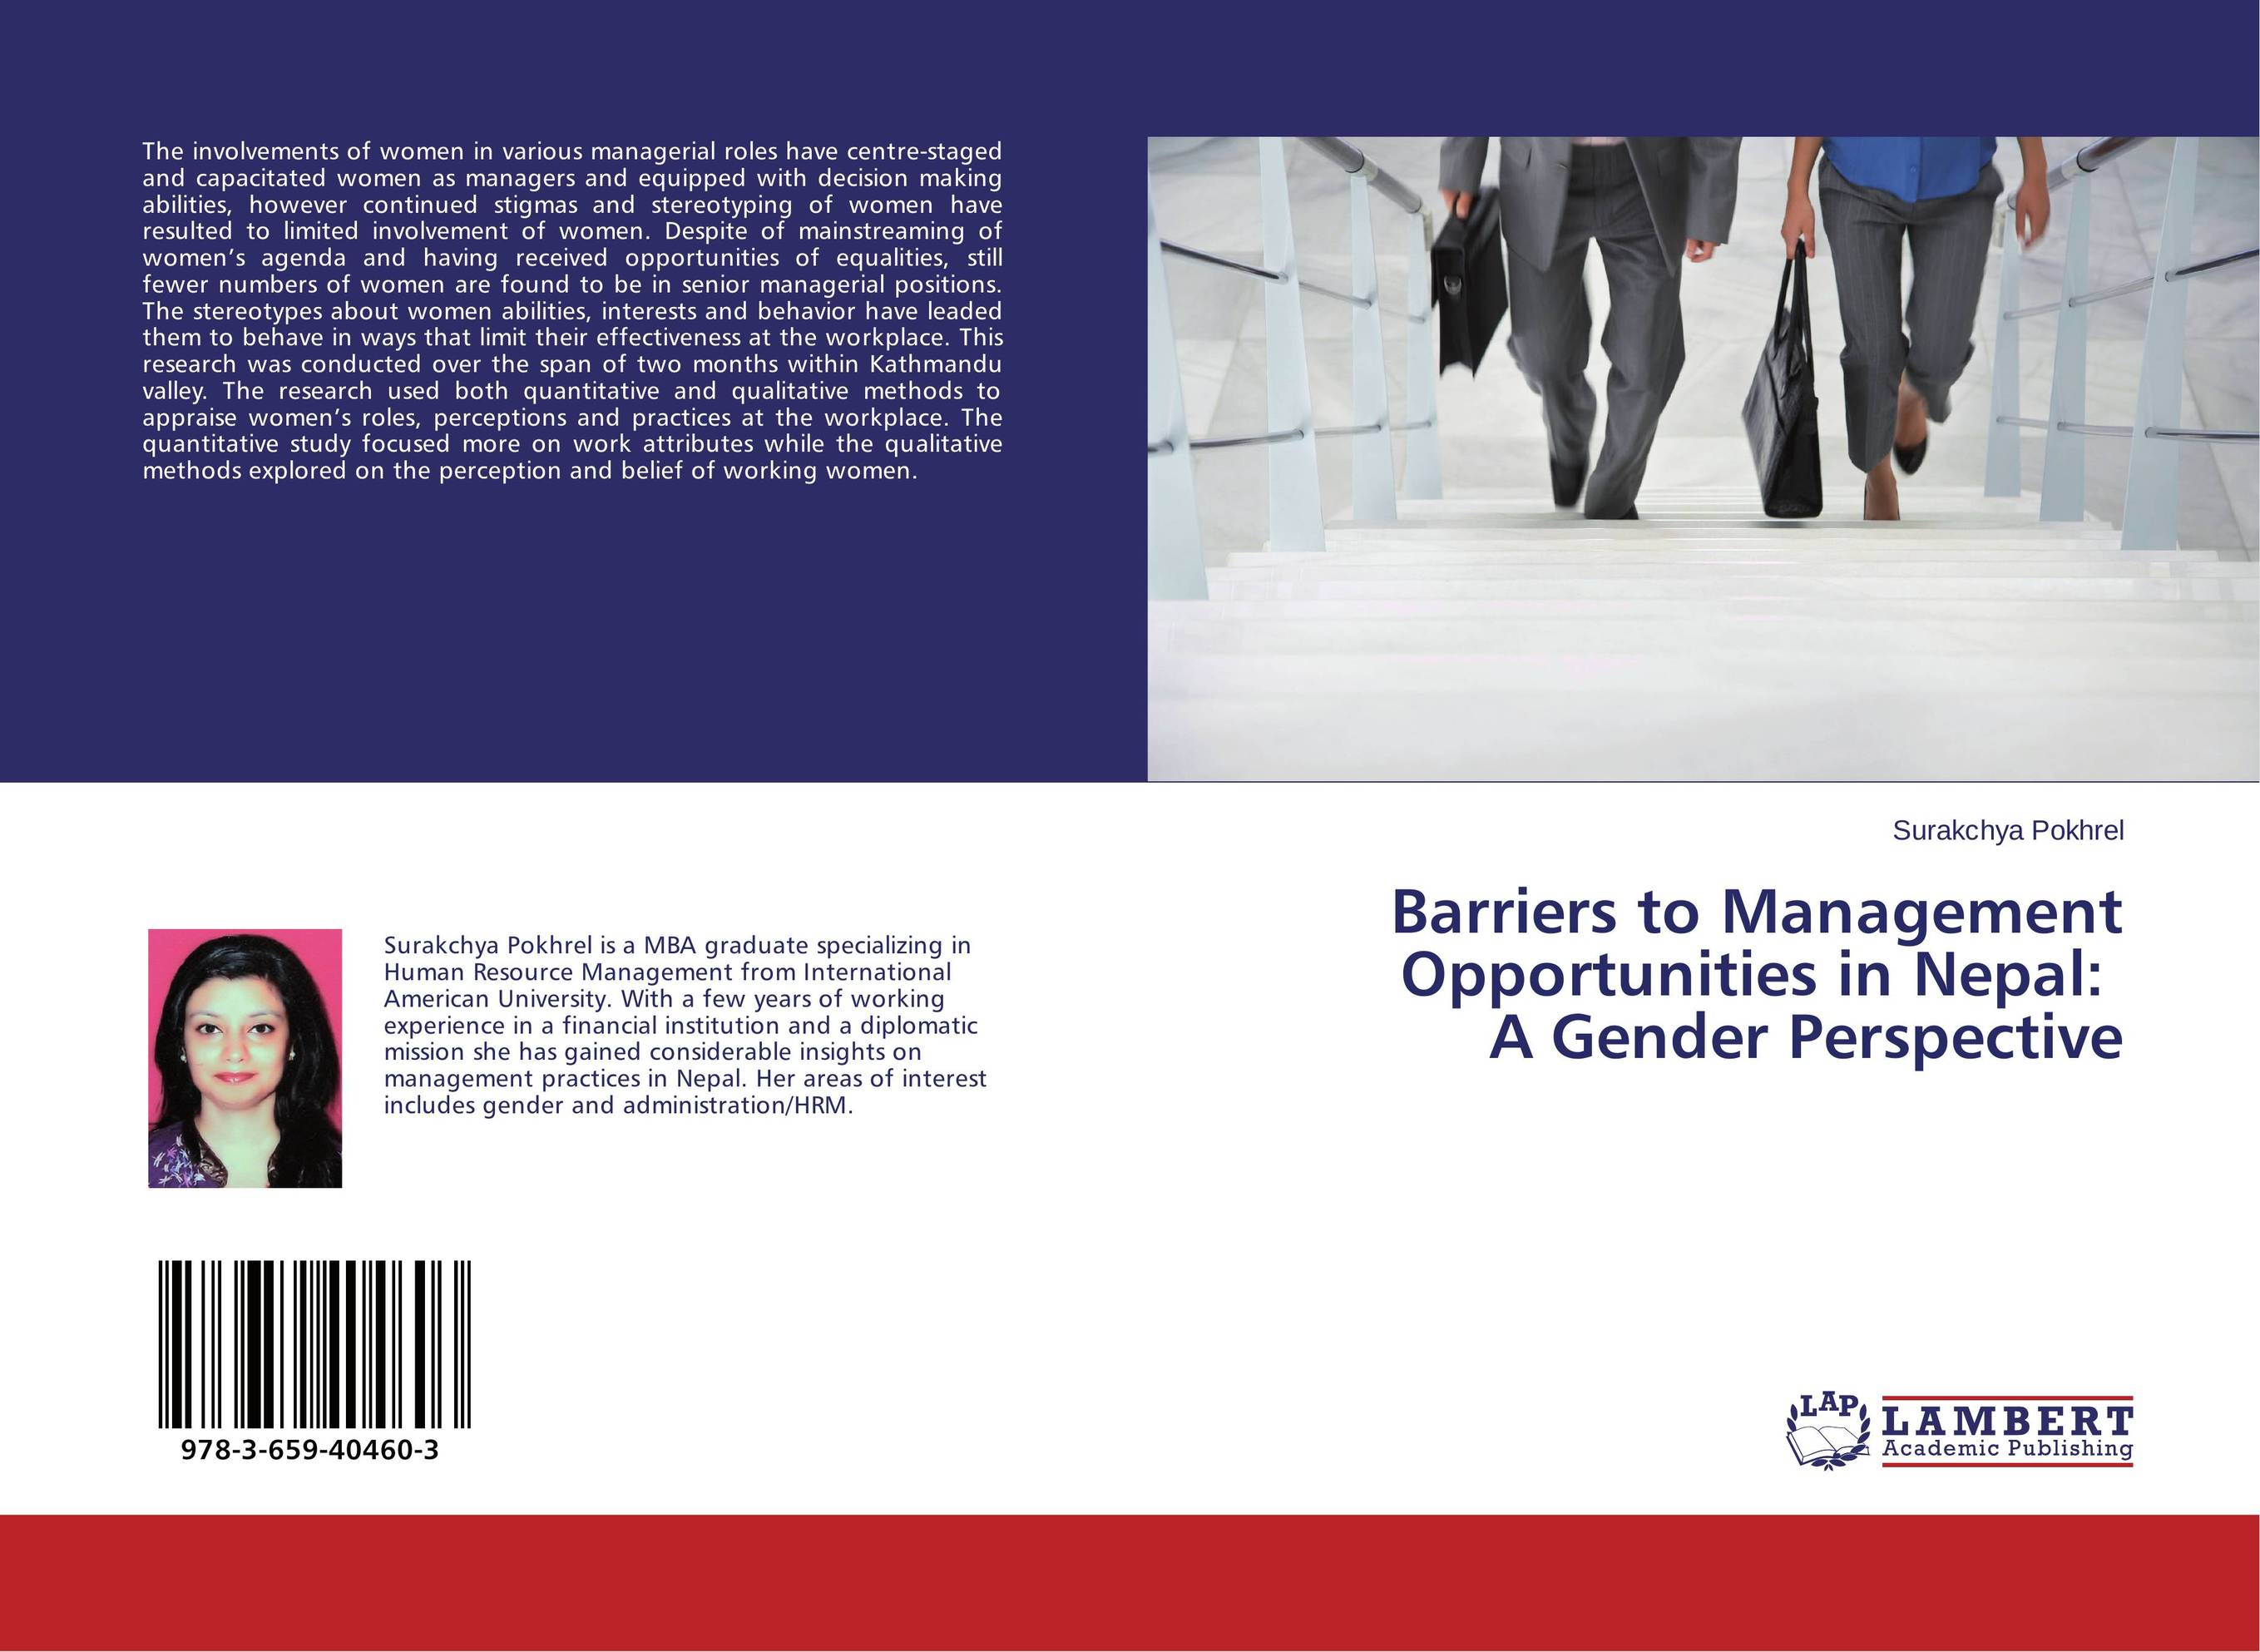 gender perspectives essays on women in museums Women and gender inequality  essays related to women and gender  this form of injustice arises from the perspective of gender roles and are cemented into.